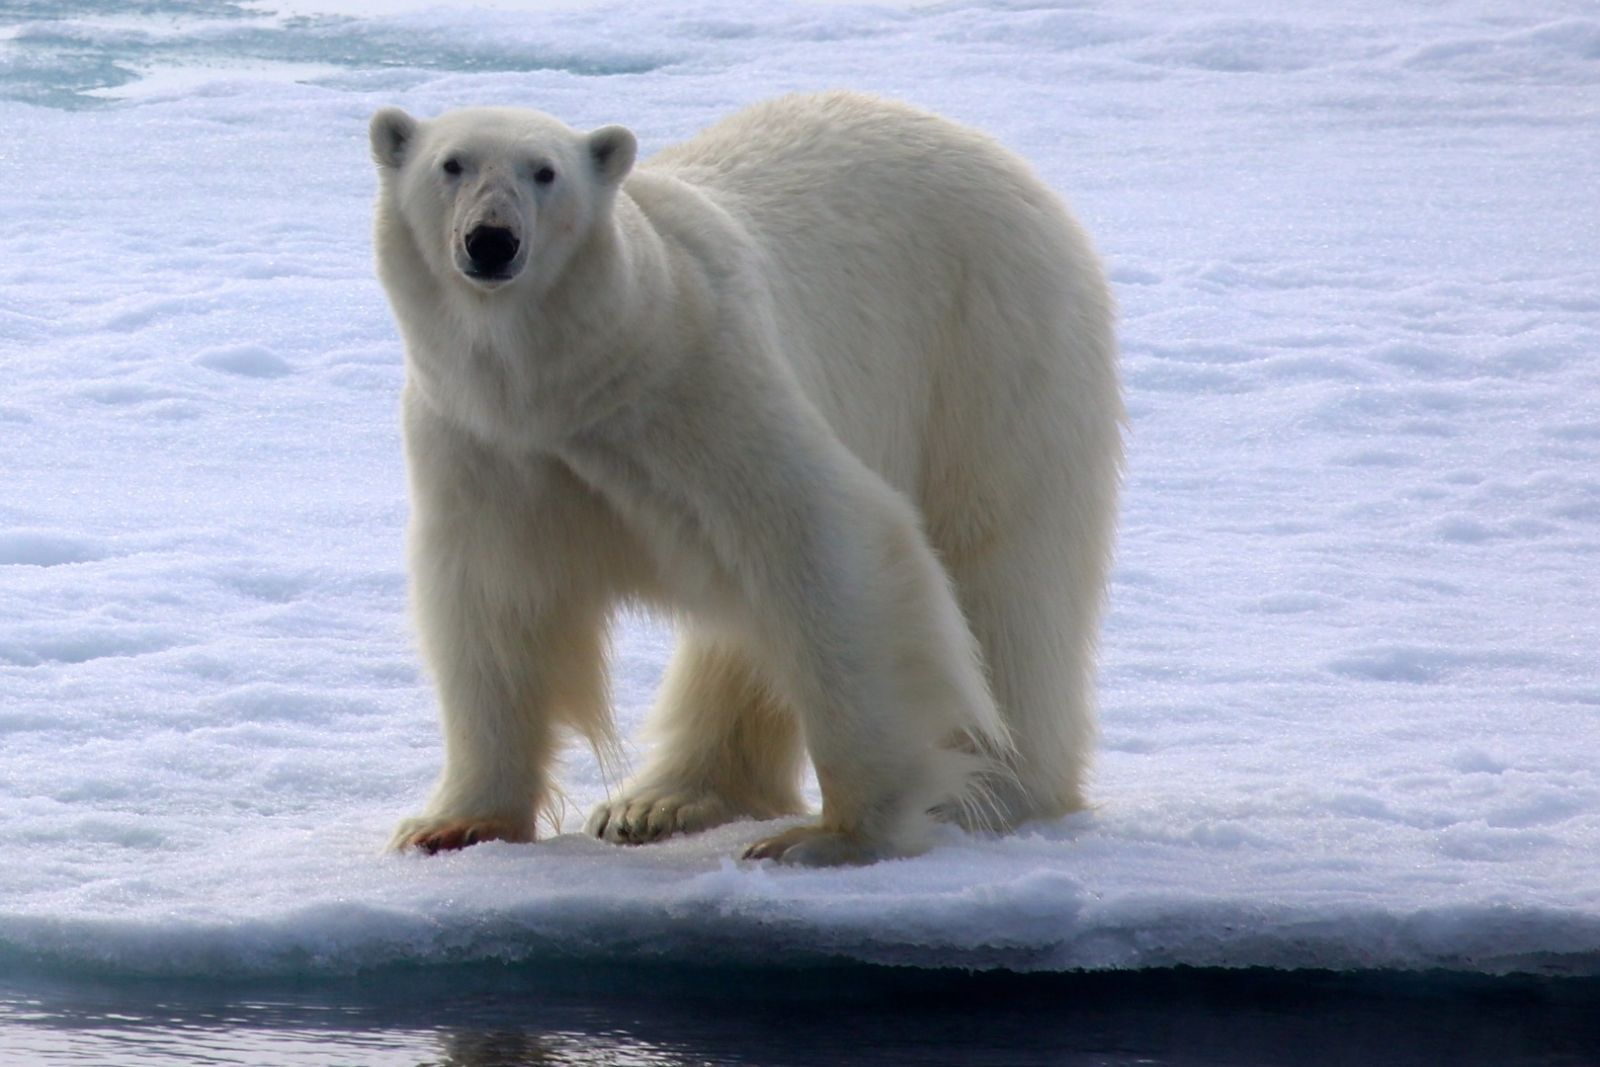 Do You Want To See A Polar Bear In His Natural Habitat We Offer Amazing Expeditions To Greenland And Svalbard Spitsbergen Where The Li Polar Bear Bear Polar